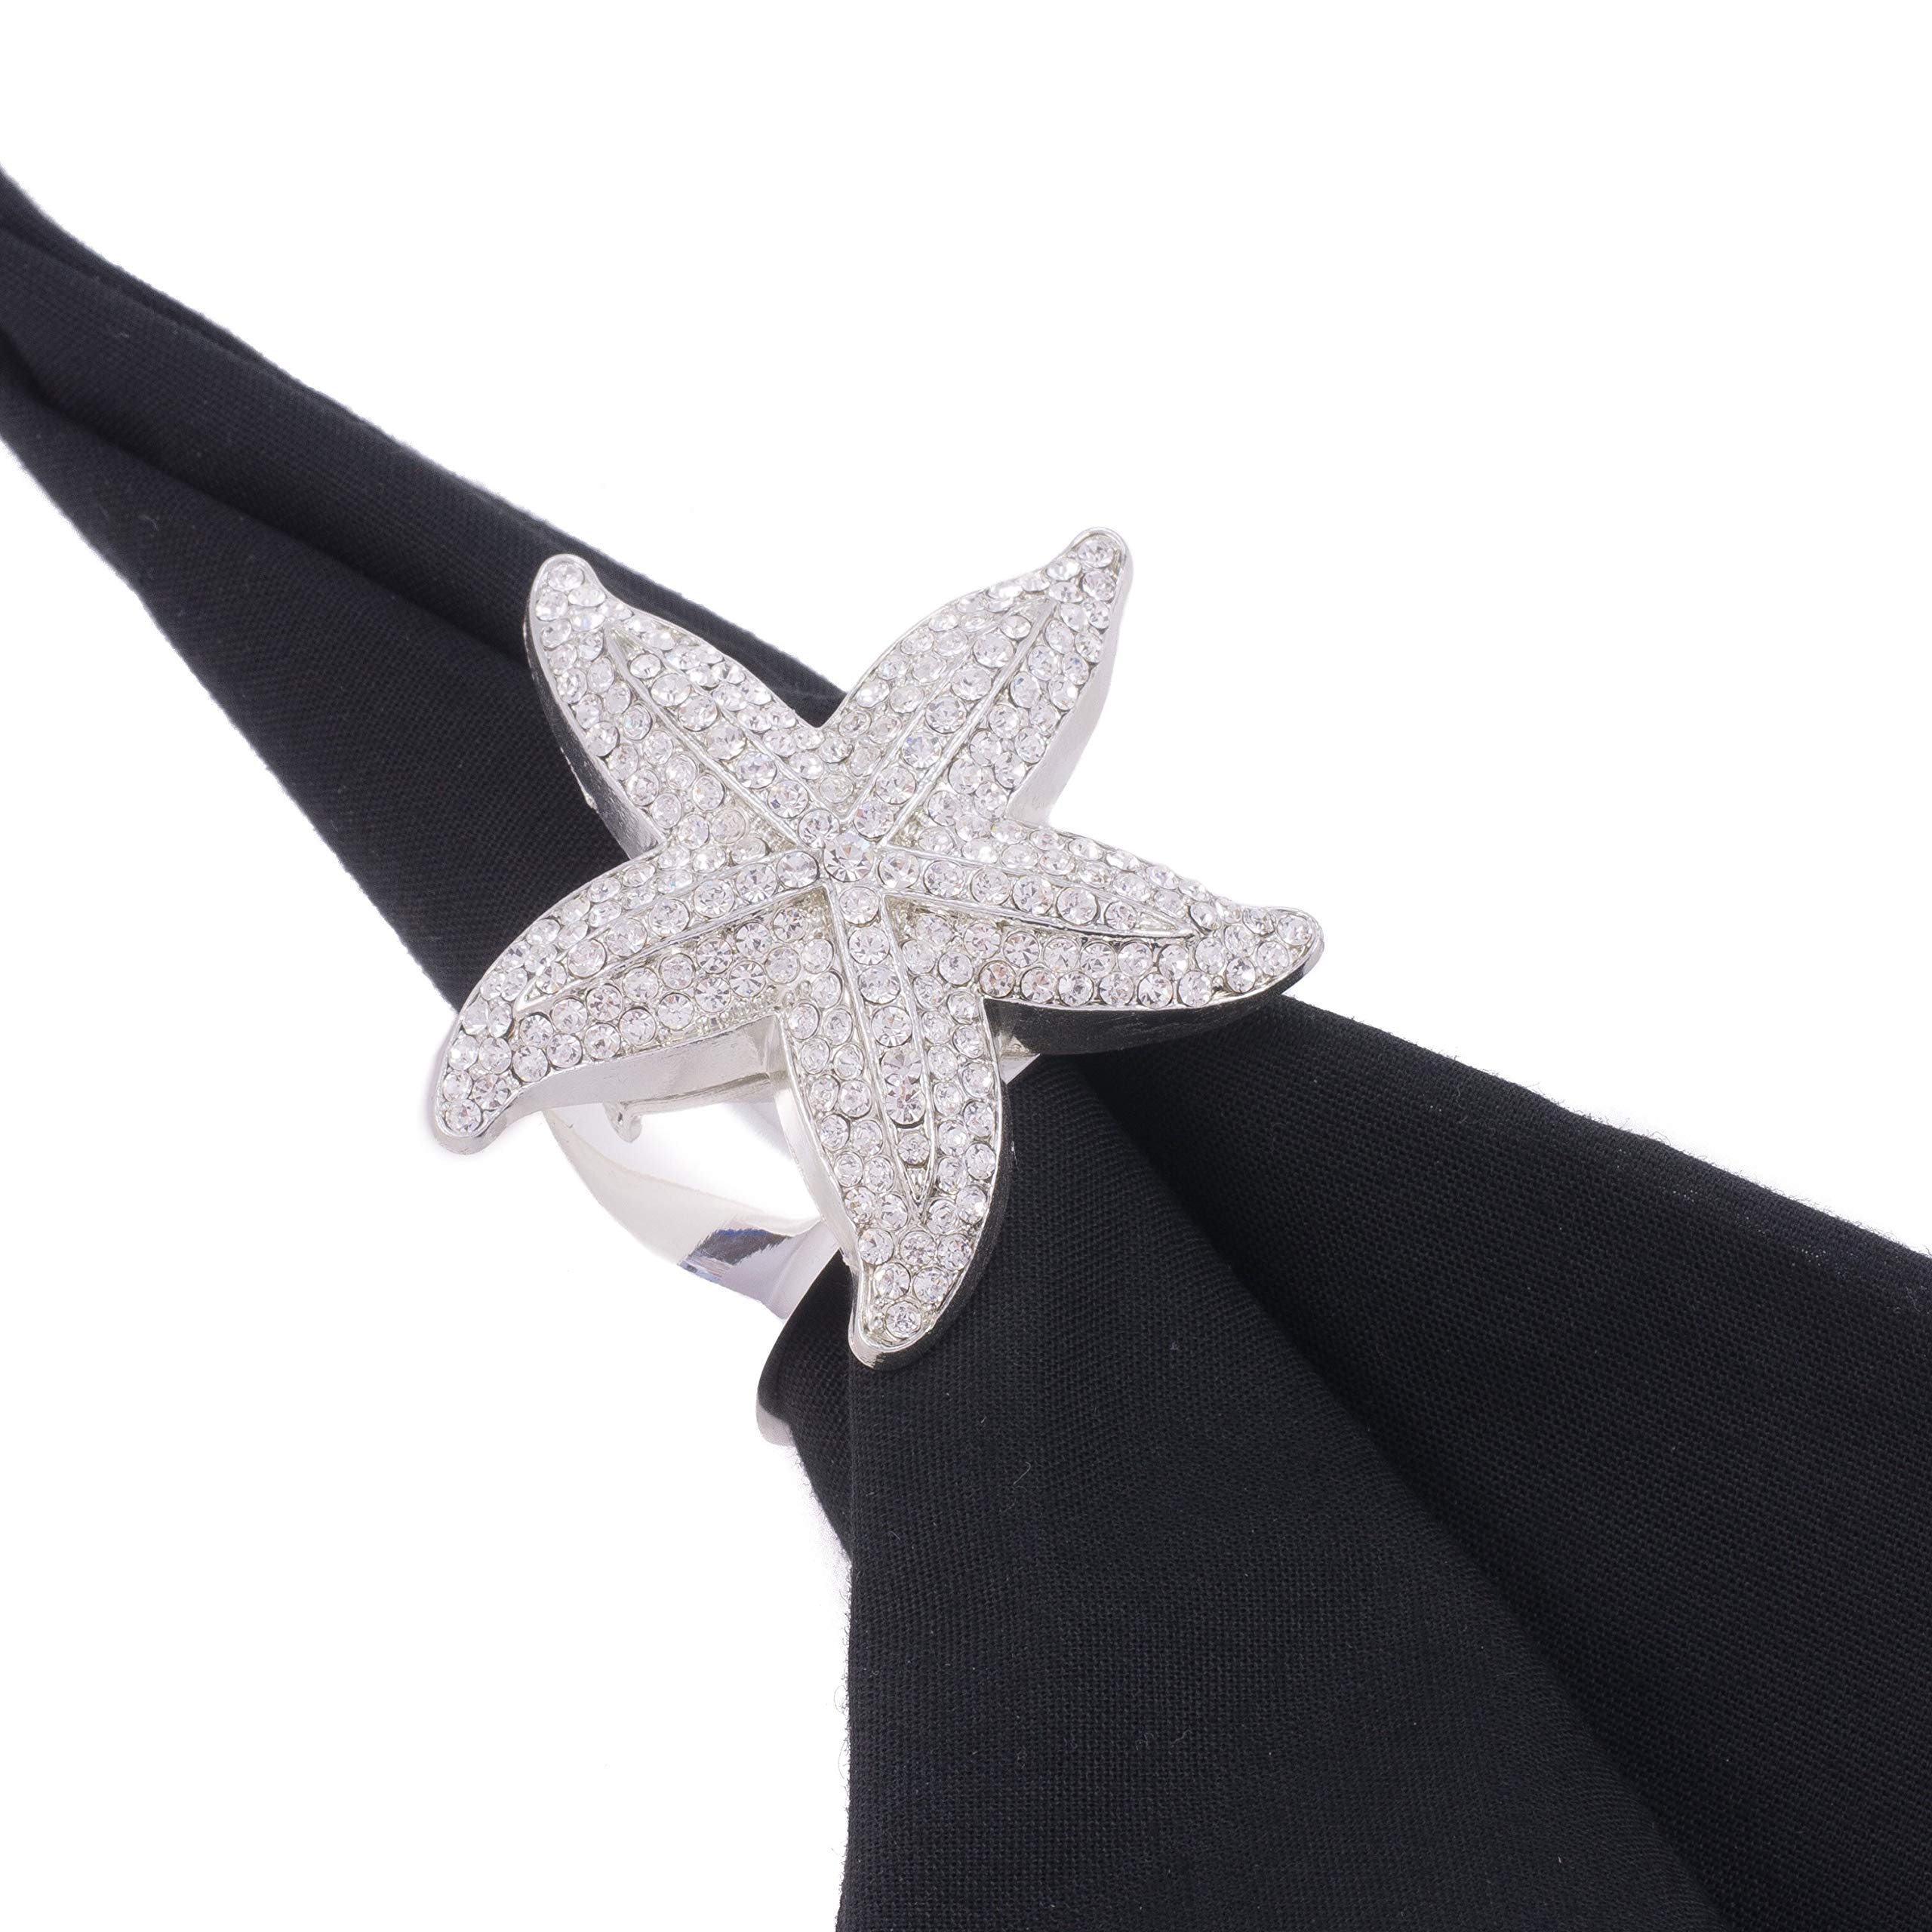 Isabella Adams Napkin Rings Featuring Swarovski Crystals and Large Silver Starfish | Set of 4